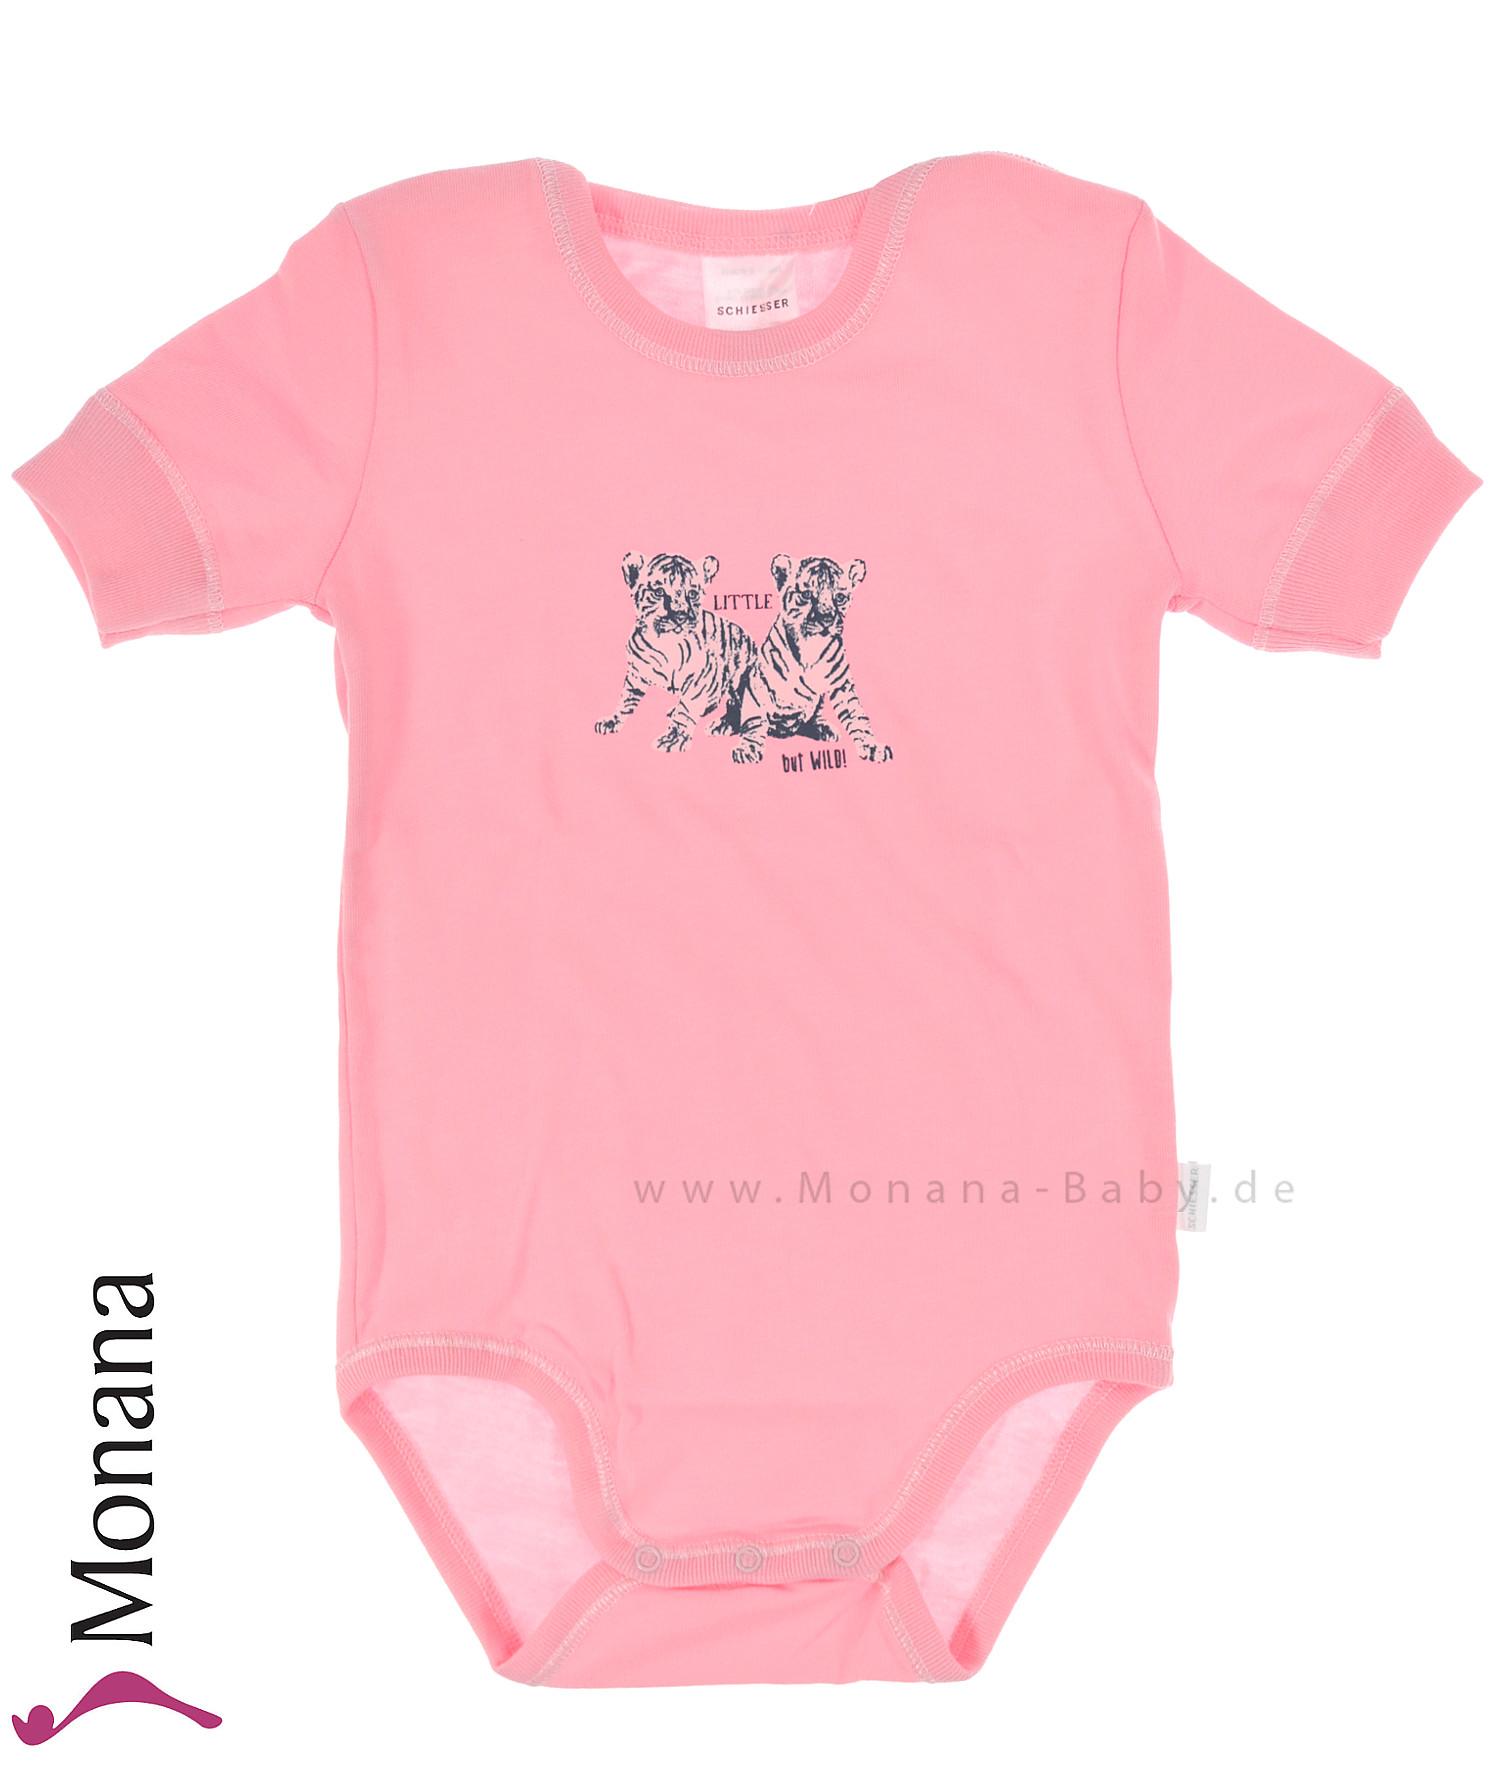 Schiesser Kurzarm-Baby-Body rosa Little but Wild<br>Größe: 74, 80, 86, 92, 98, 104